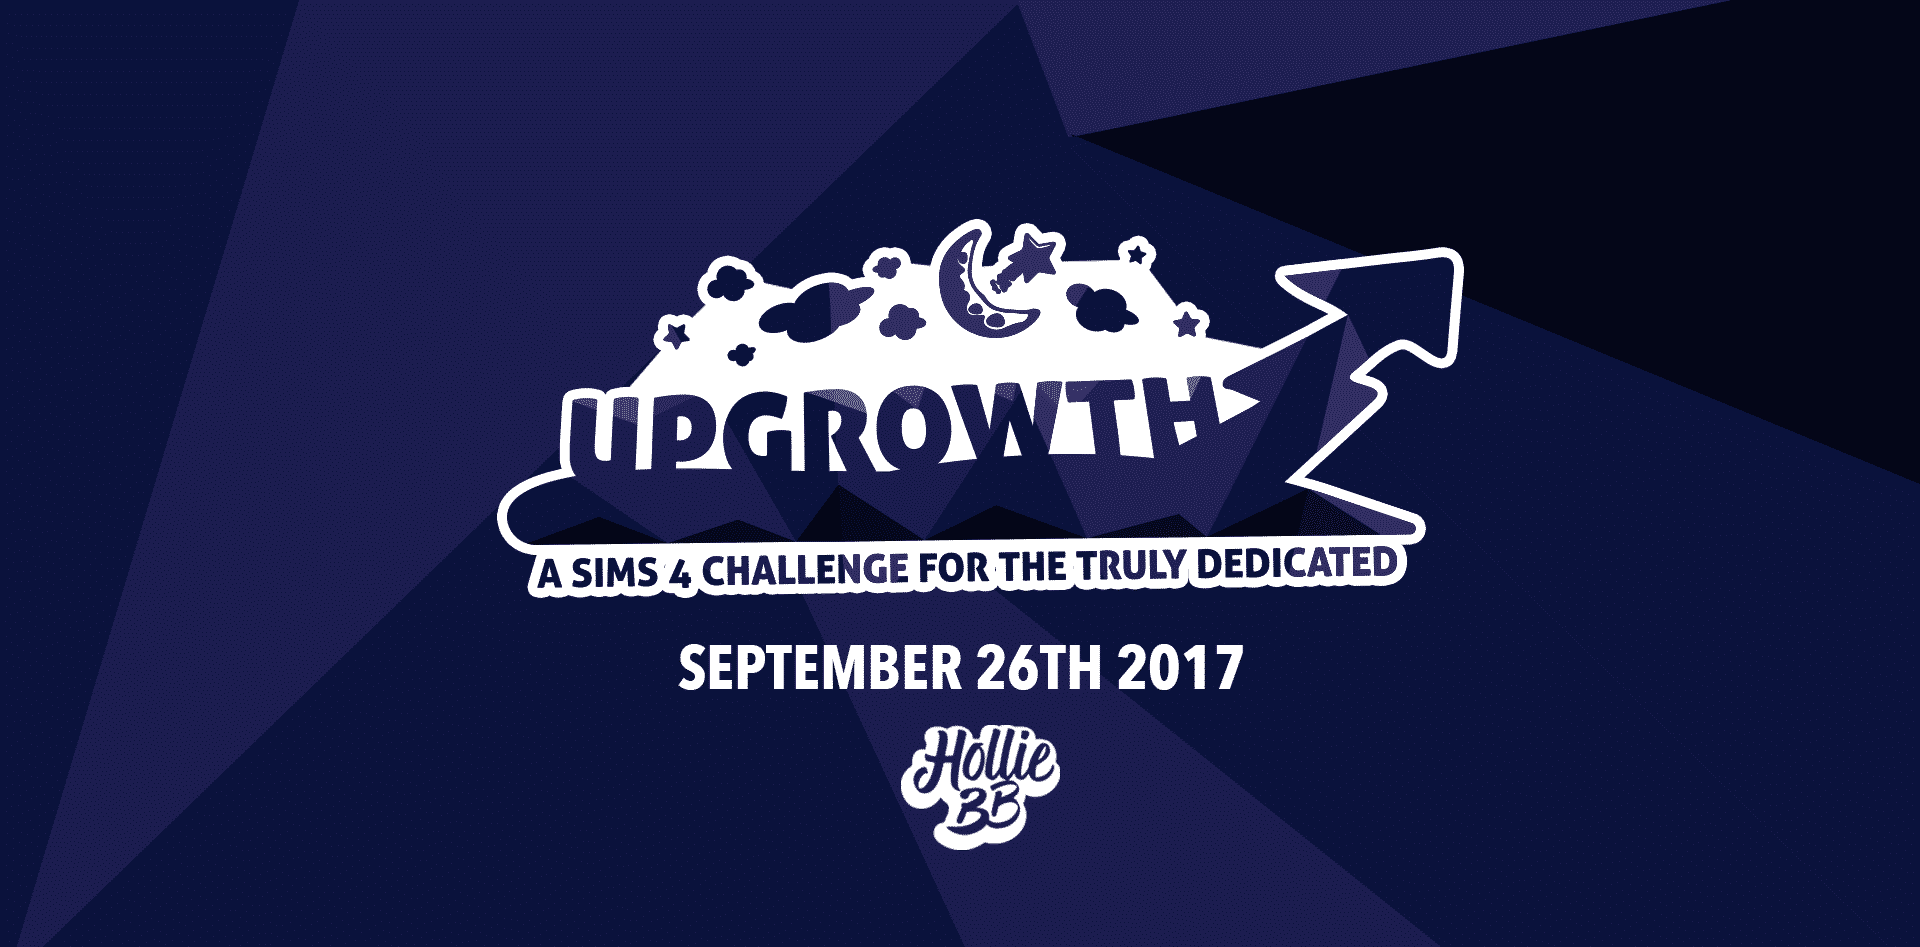 upgrowth challenge, upgrowth, the sims 4 upgrowth challenge, the sims 4 upgrowth, holliebb upgrowth, sims 4 challenges